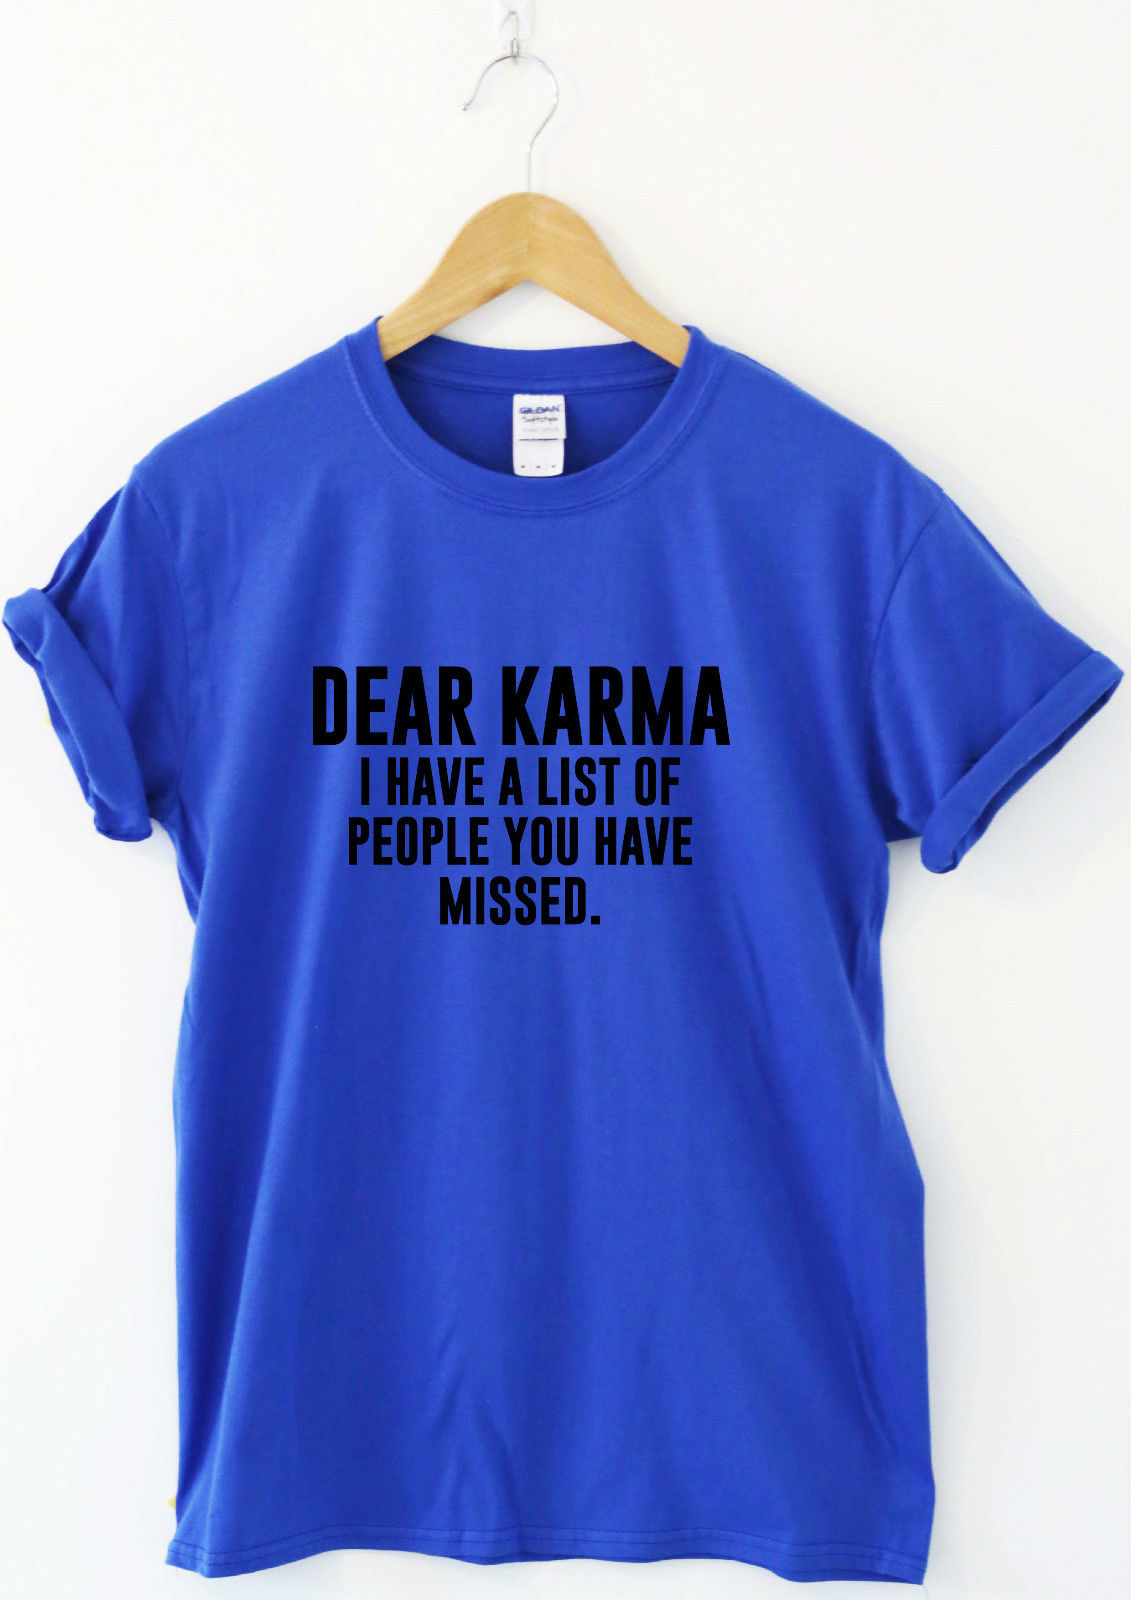 Dear Karma - funny humorous T-shirt mens womens sarcasm saying ladies slogan top Funny Tops Tee New Unisex free shipping